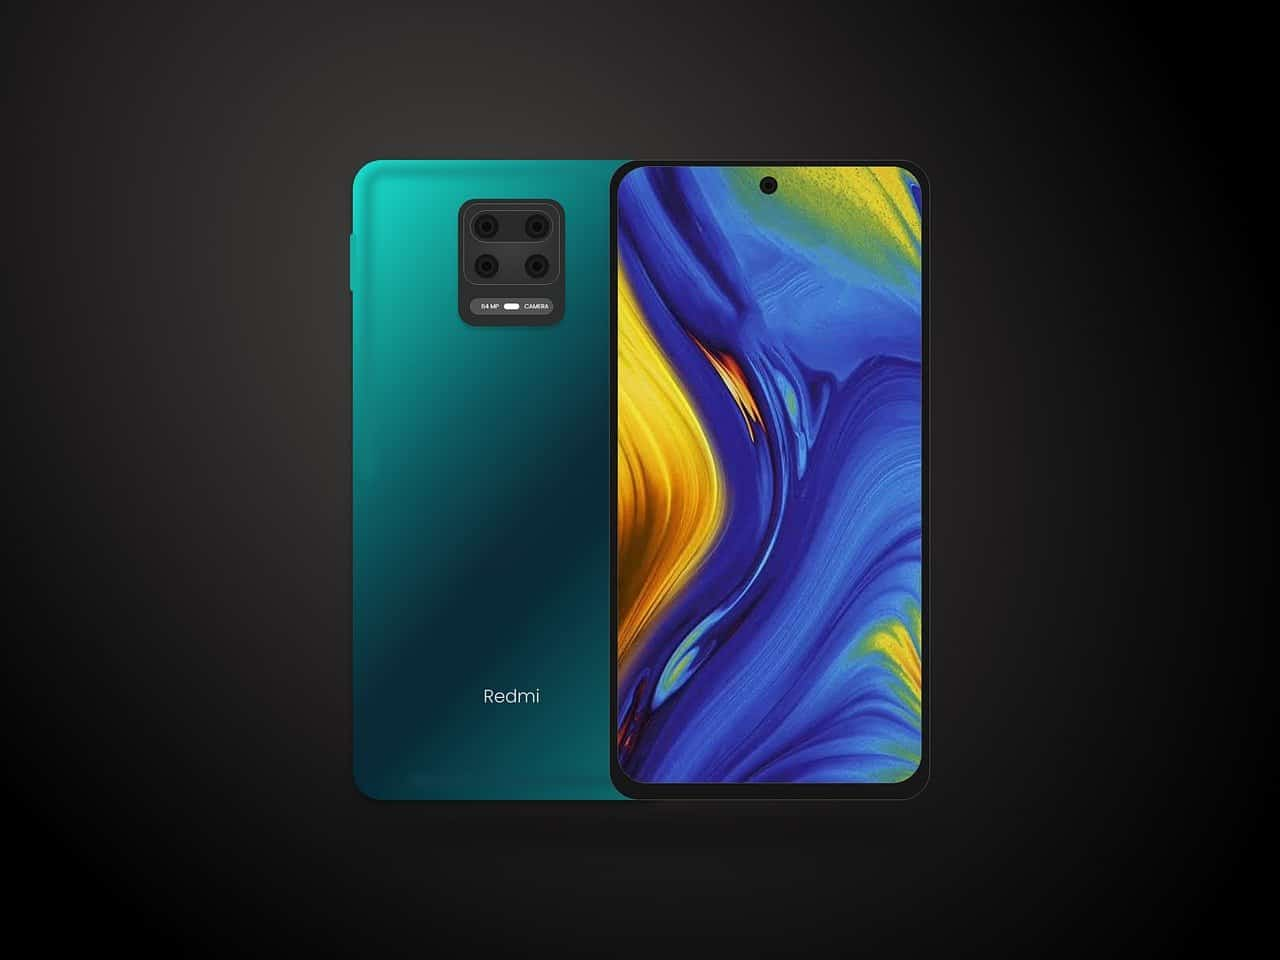 Xiaomi Launches Redmi Note 9 Pro And Redmi Note 9 Smartphones In South Africa - ZIM LATEST NEWS